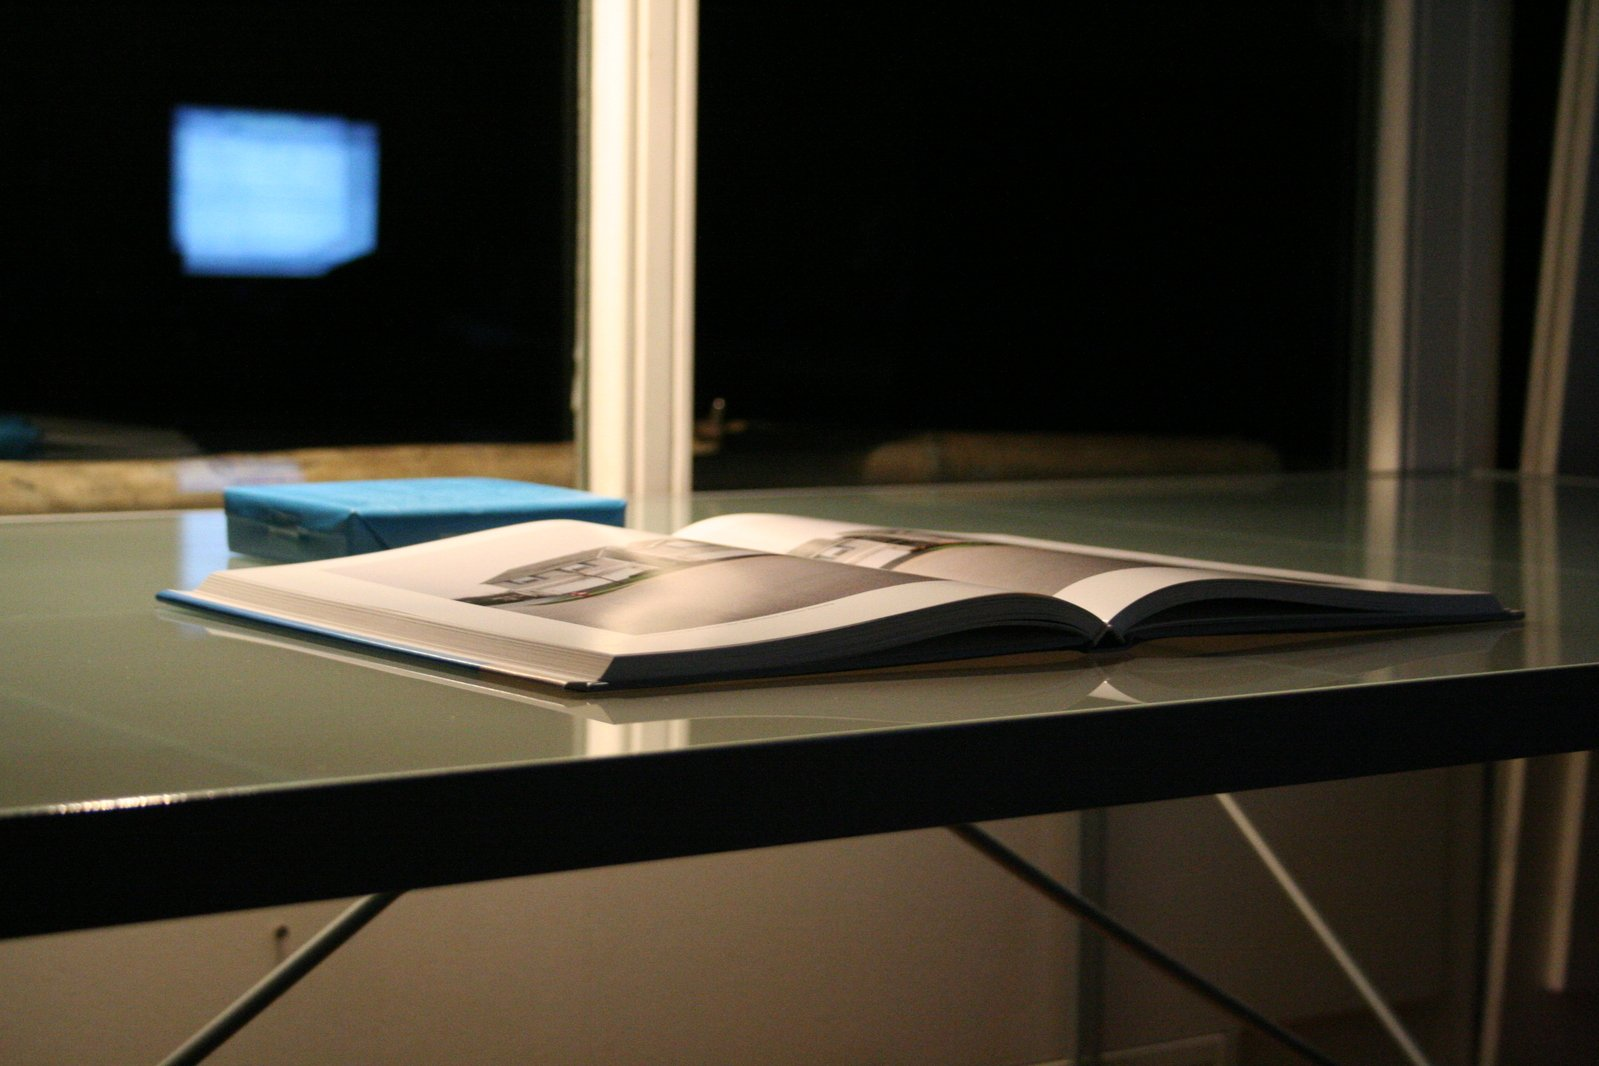 A book on a desk